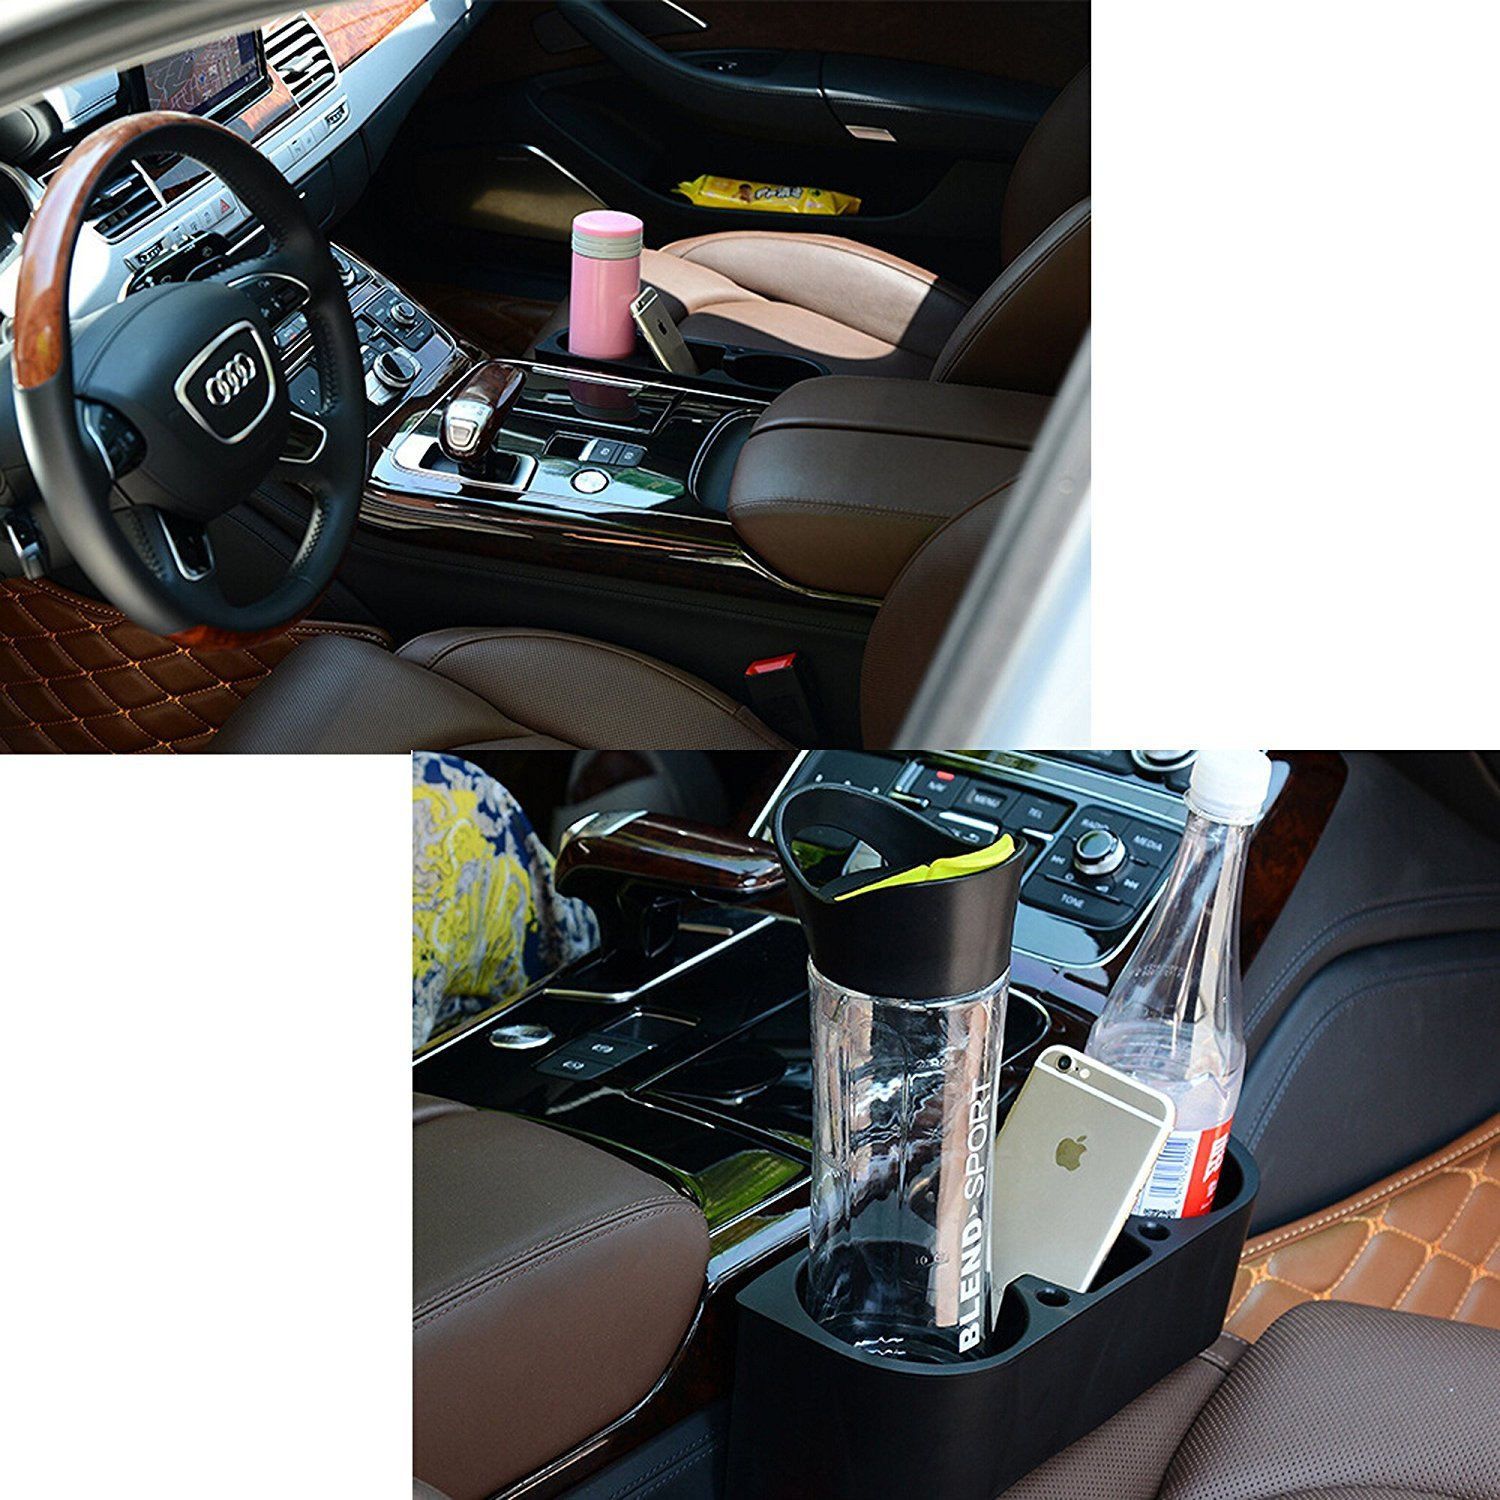 BCP Black Color Auto Car Seat Side Drink Cup Holder Organizer 4350406688